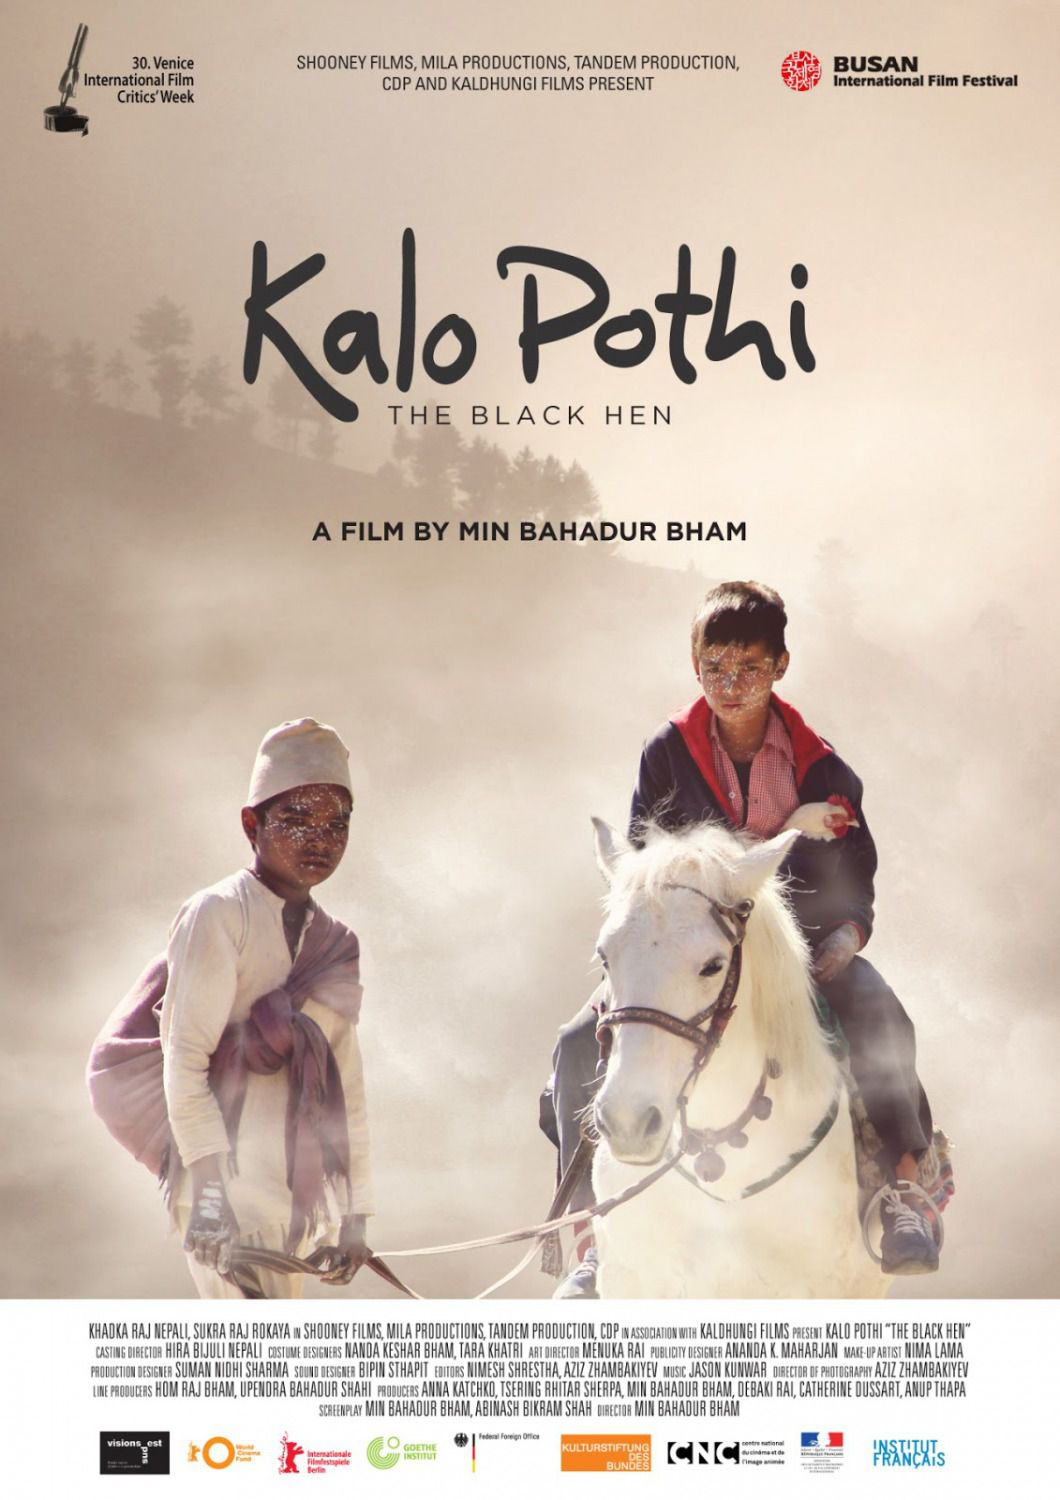 Kalo Pothi - The Black Hen - film poster